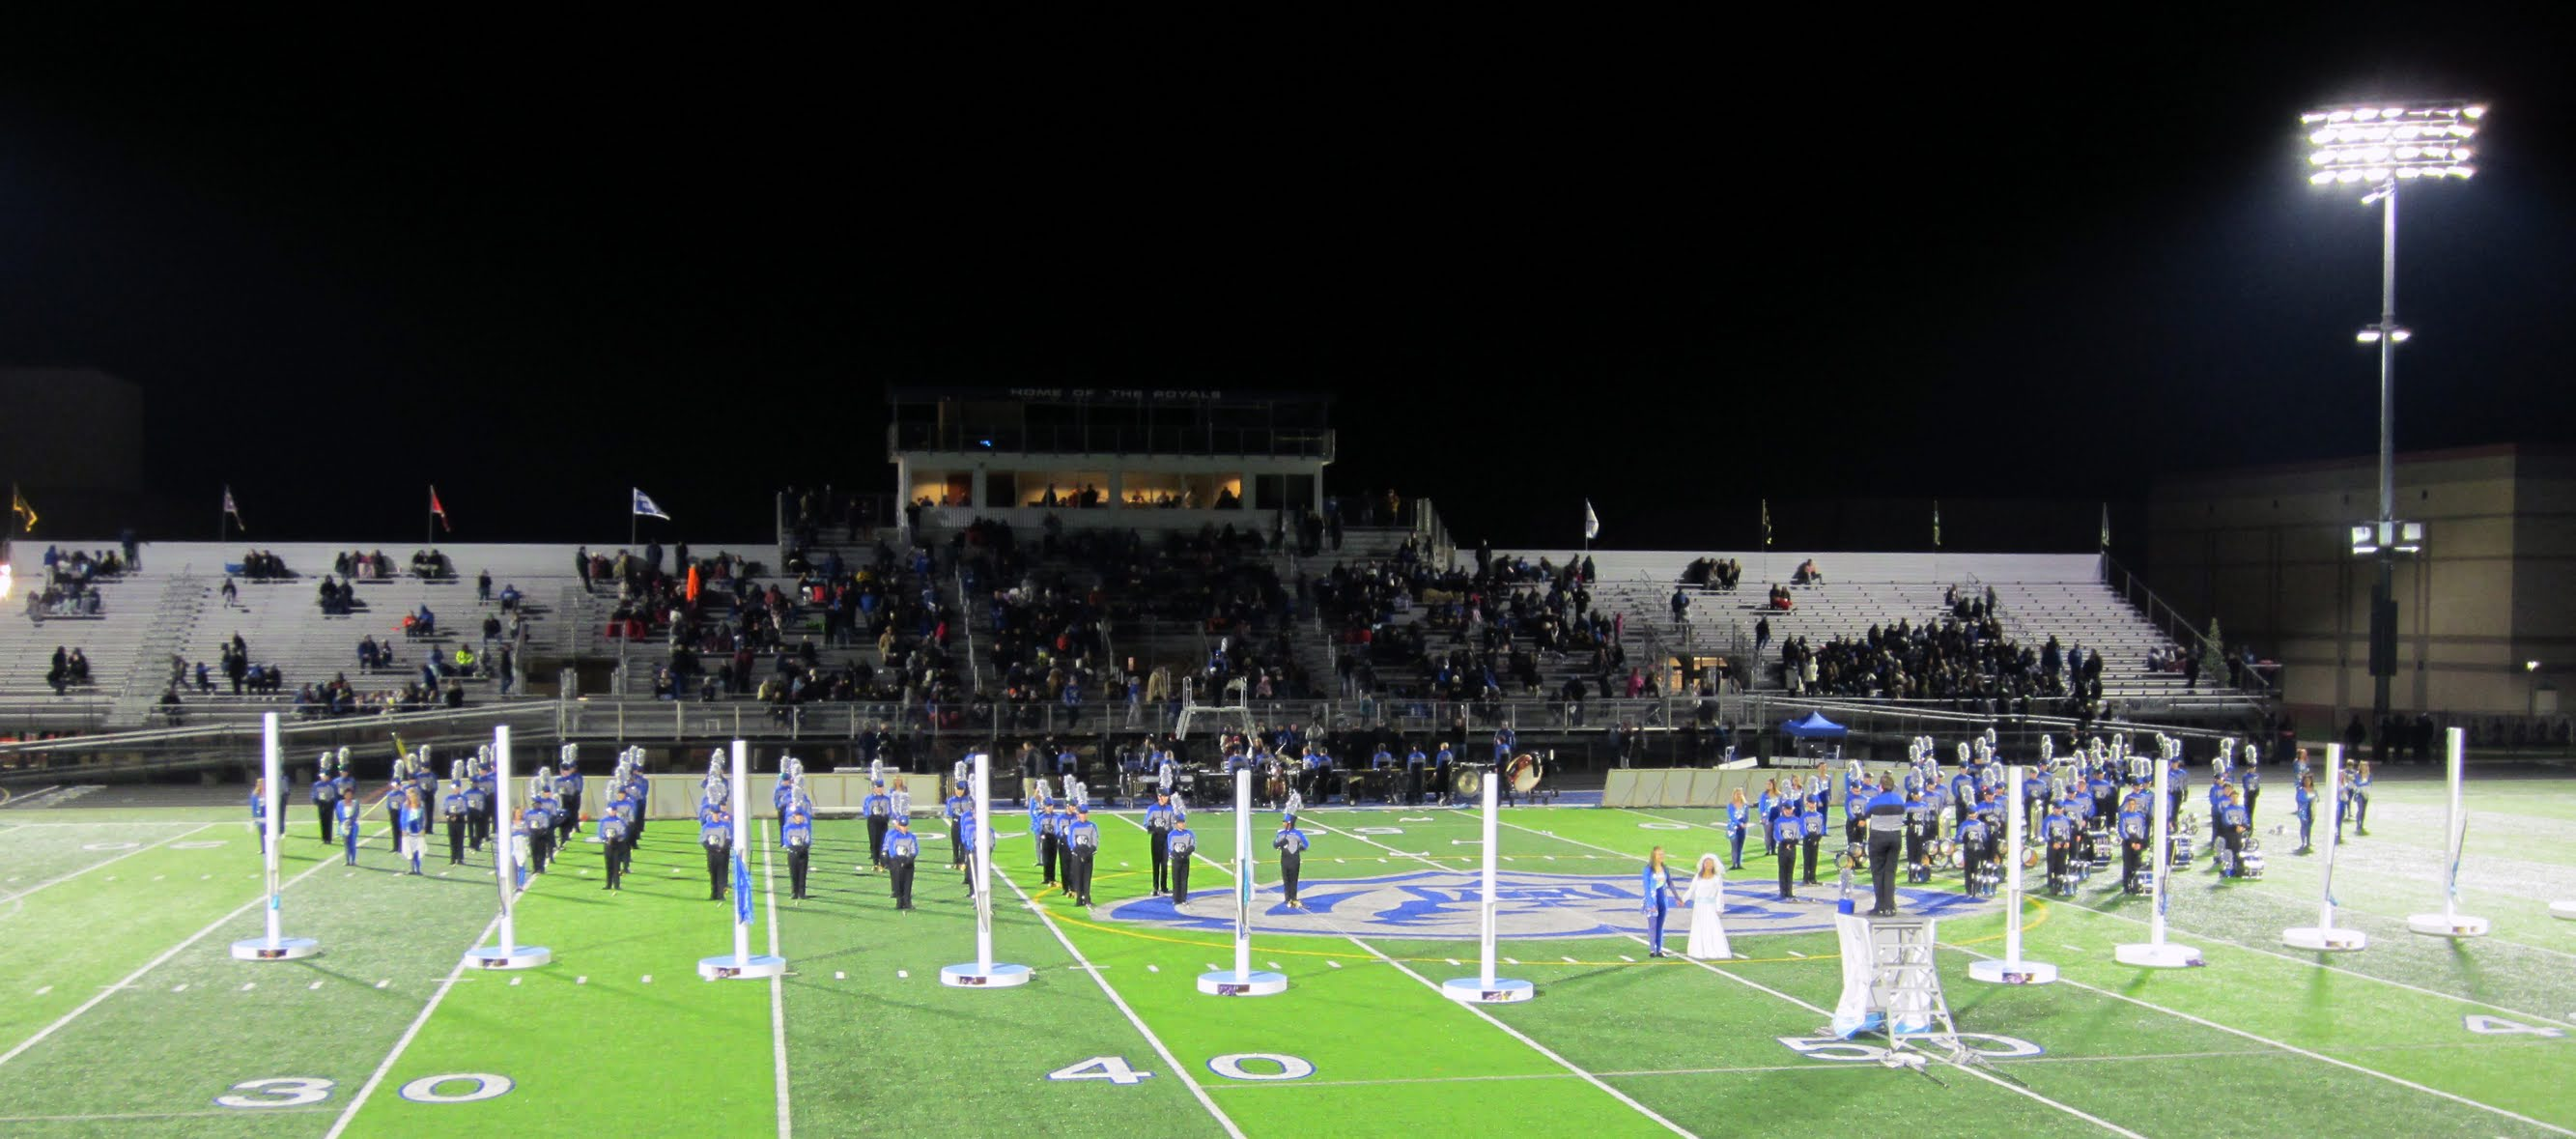 Hamilton Southeastern High School's marching band performs a half time show